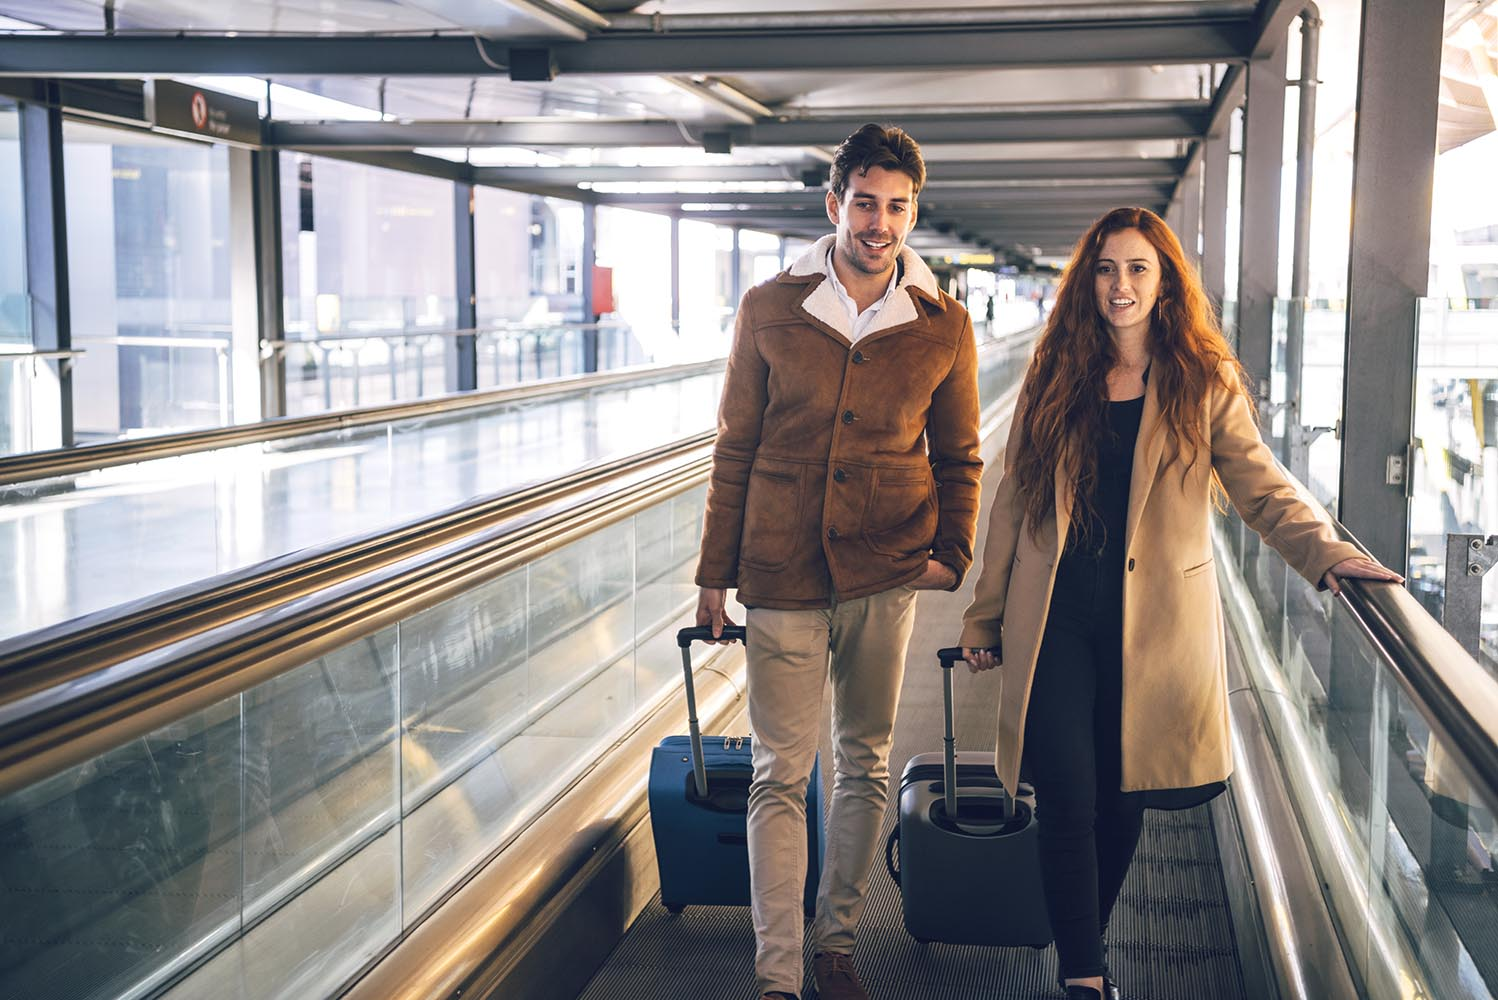 Cheerful couple with luggage on travelator